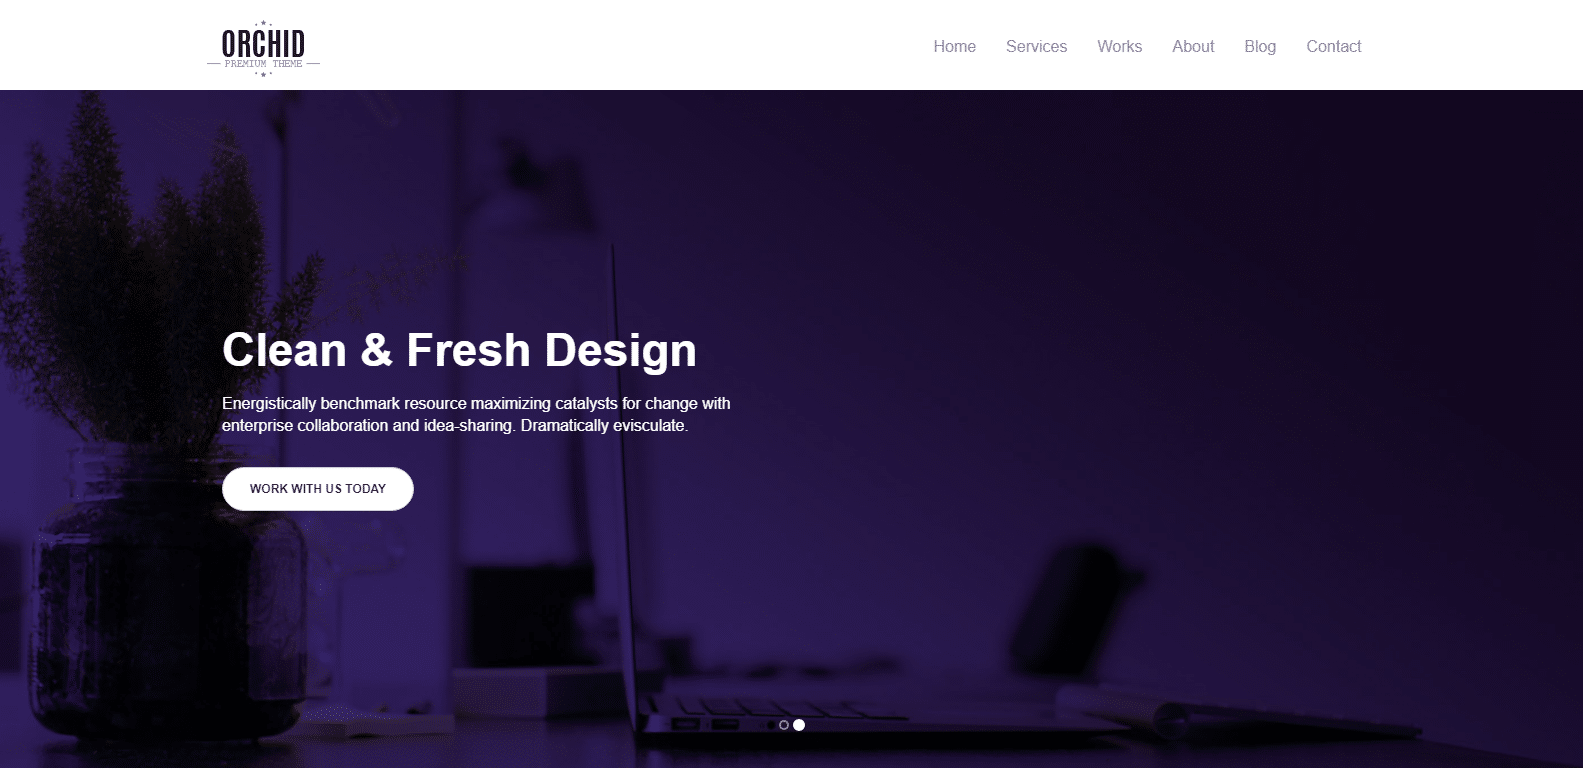 orchid-single-page-website-template